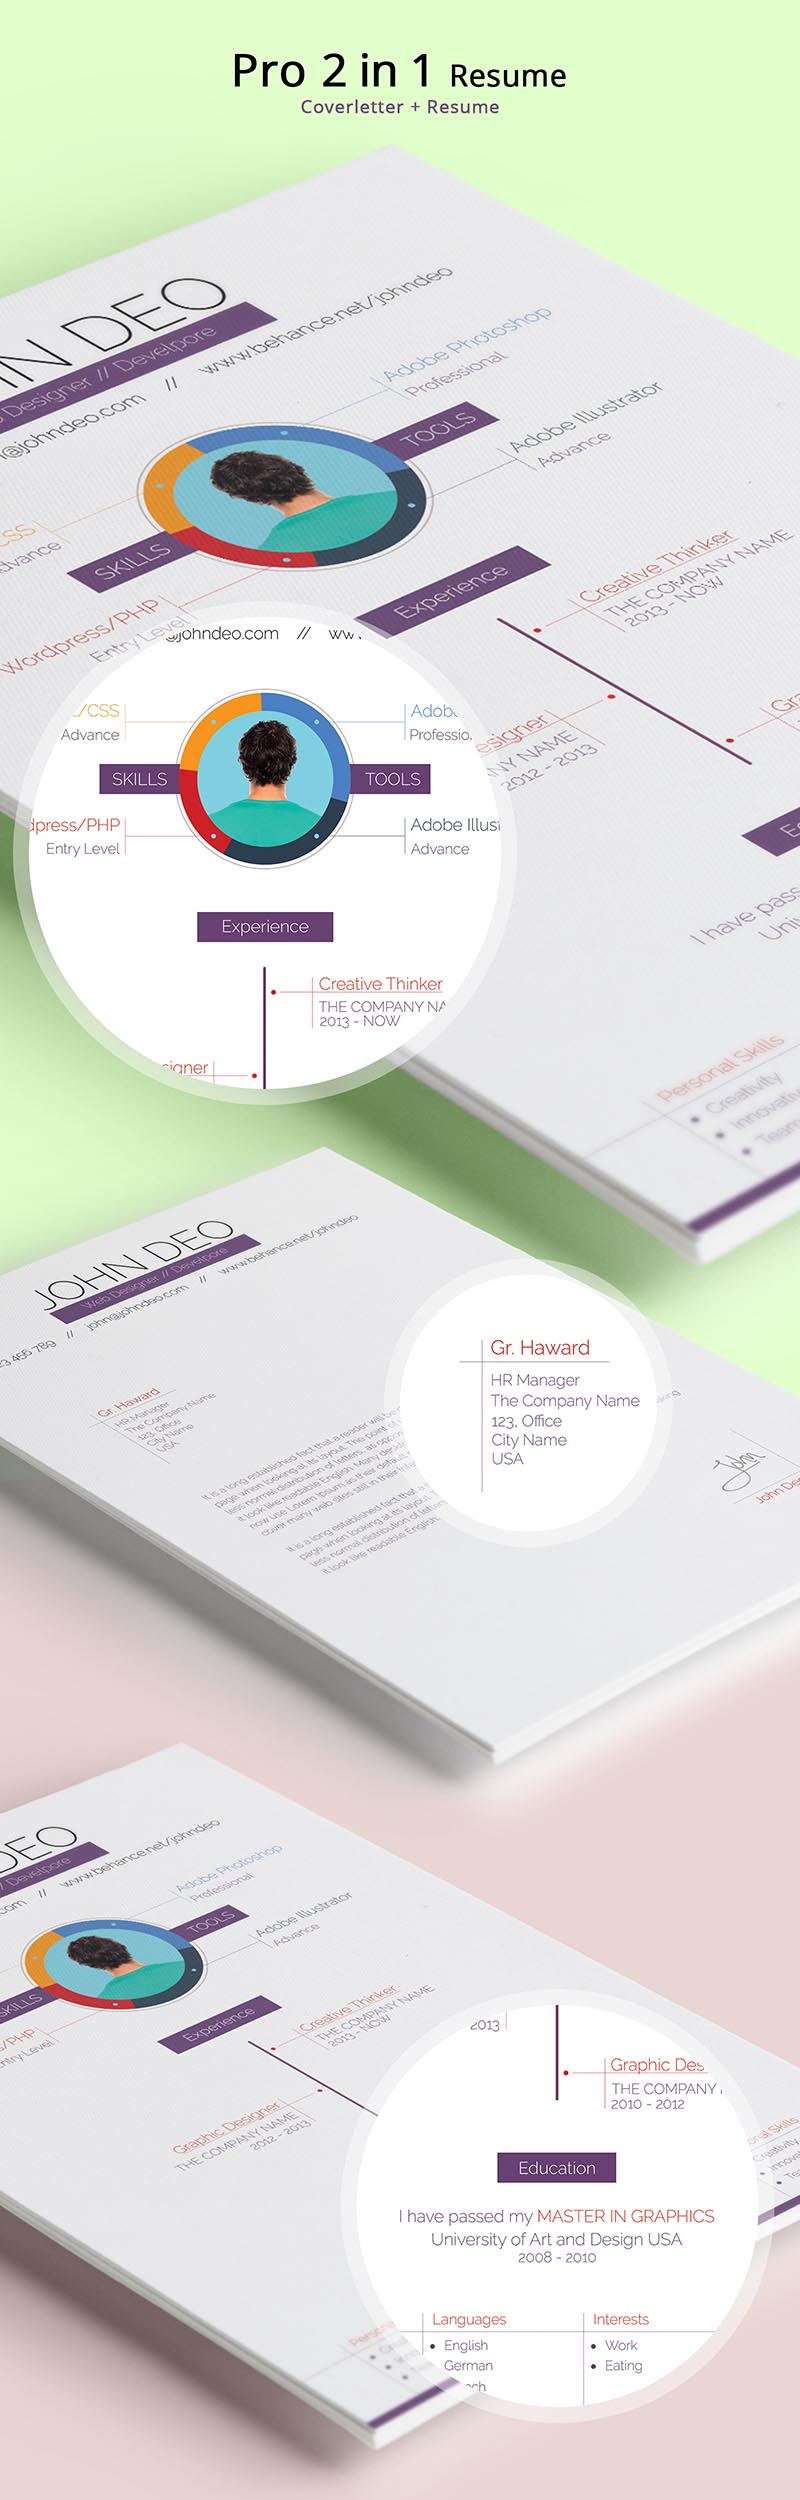 Free Resume-CV Template Design For Web Designers - Developers 2015